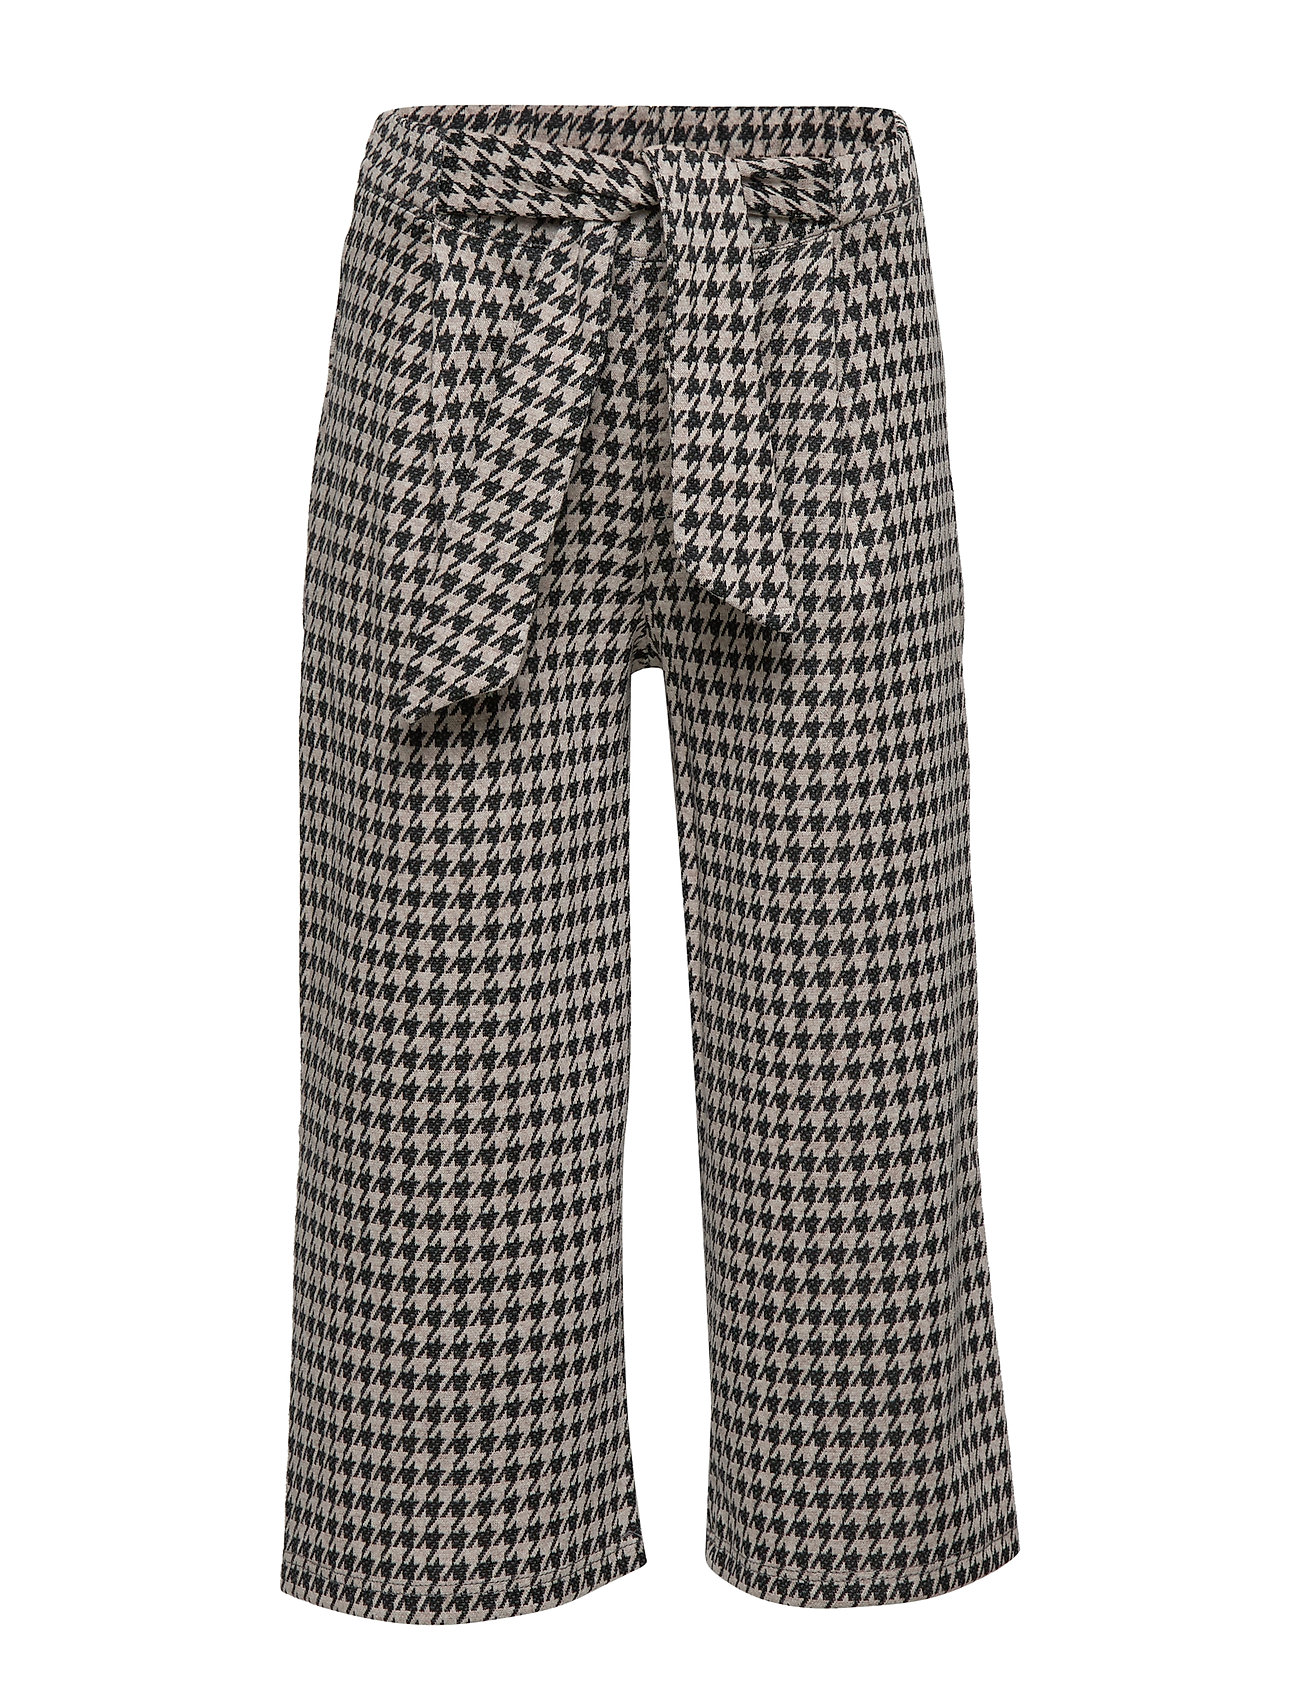 Mango Kids Houndstooth culotte trousers - CHARCOAL